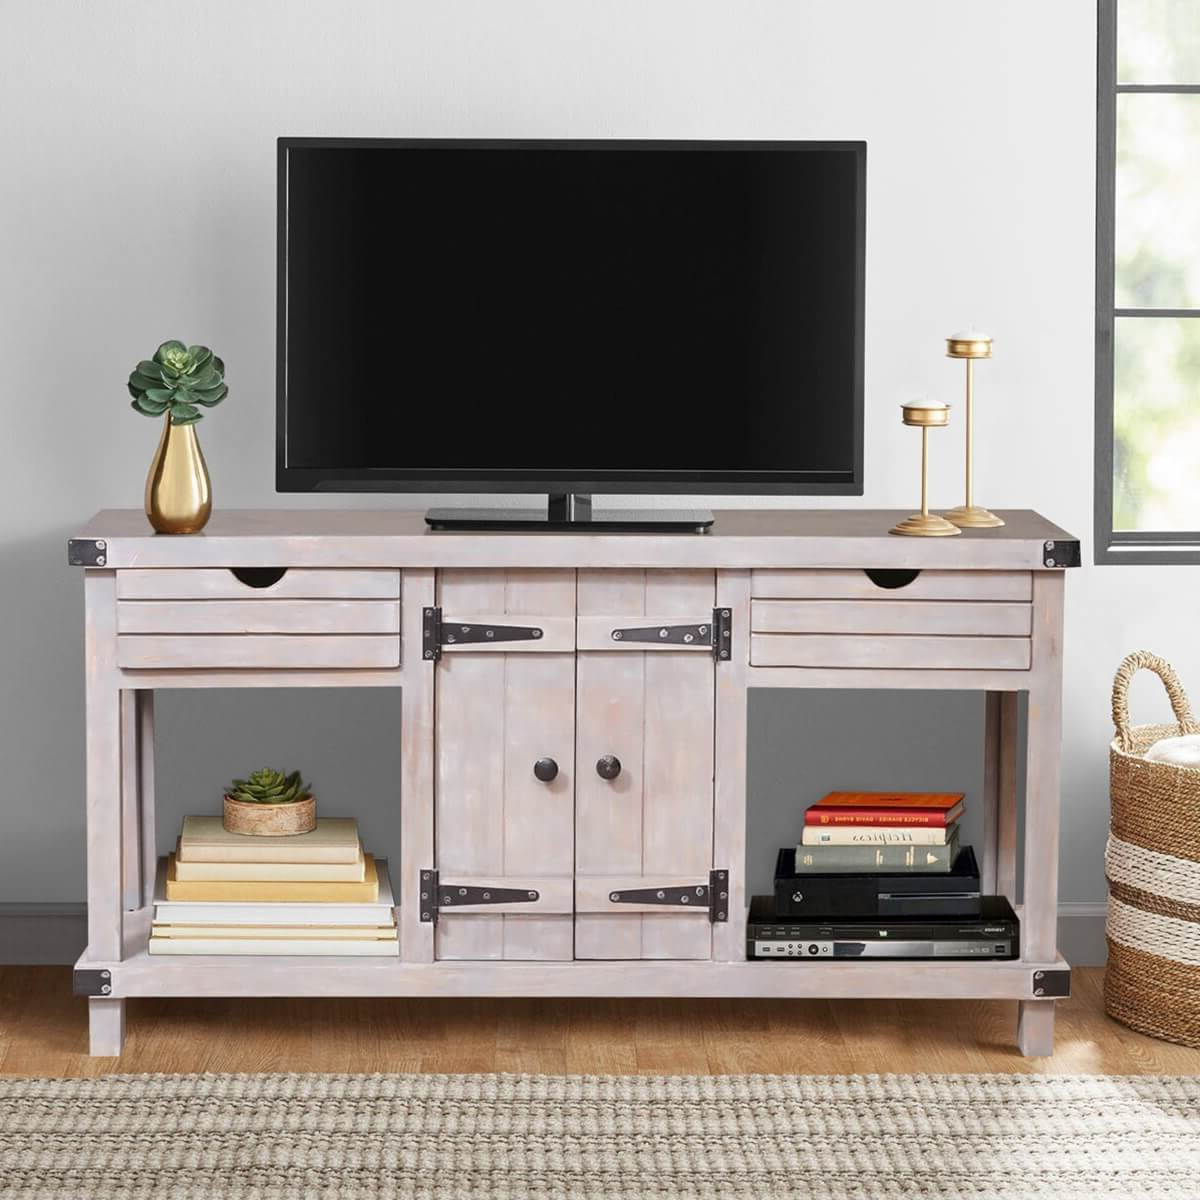 Famous Gibsland Reclaimed Wood 2 Drawer Media Console Tv Stand Table Regarding Manhattan 2 Drawer Media Tv Stands (View 2 of 25)